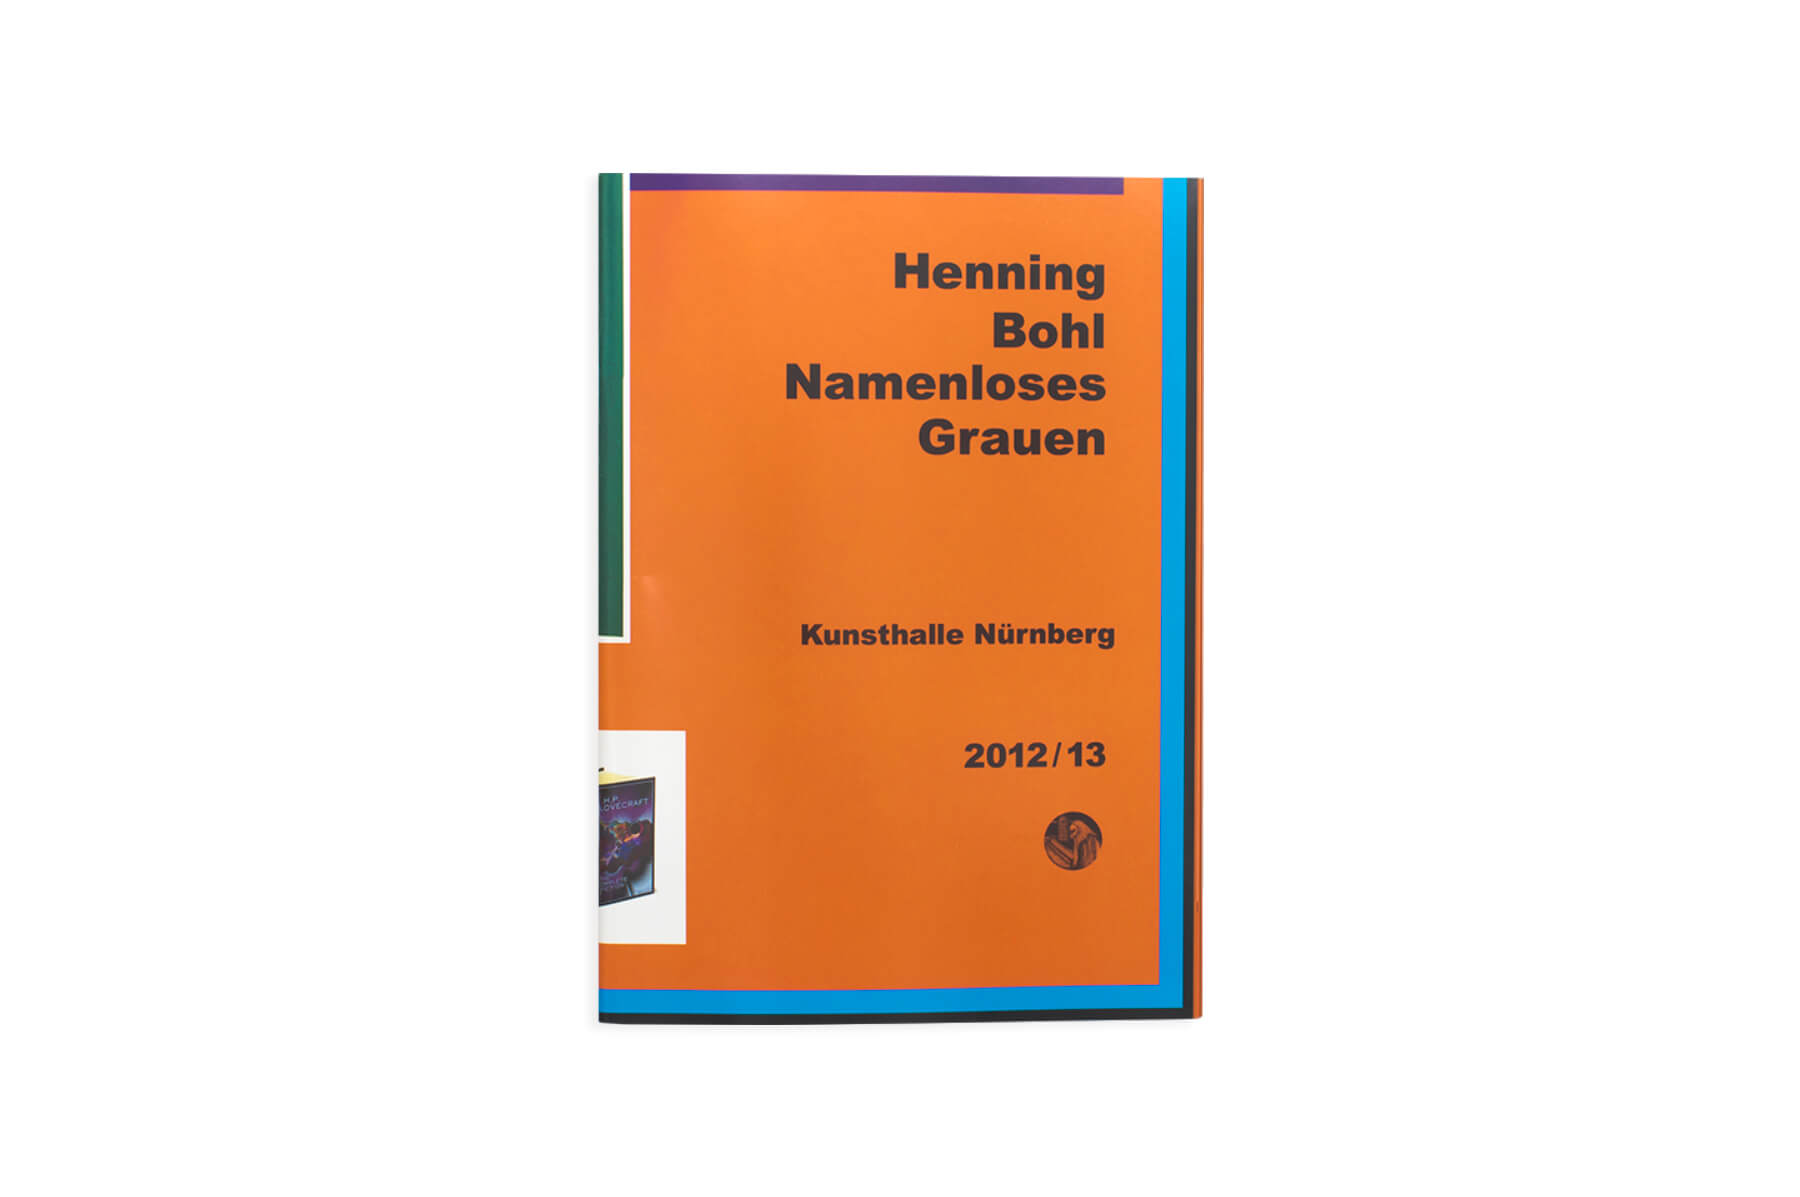 Product image of Henning Bohl: Namenloses Grauen